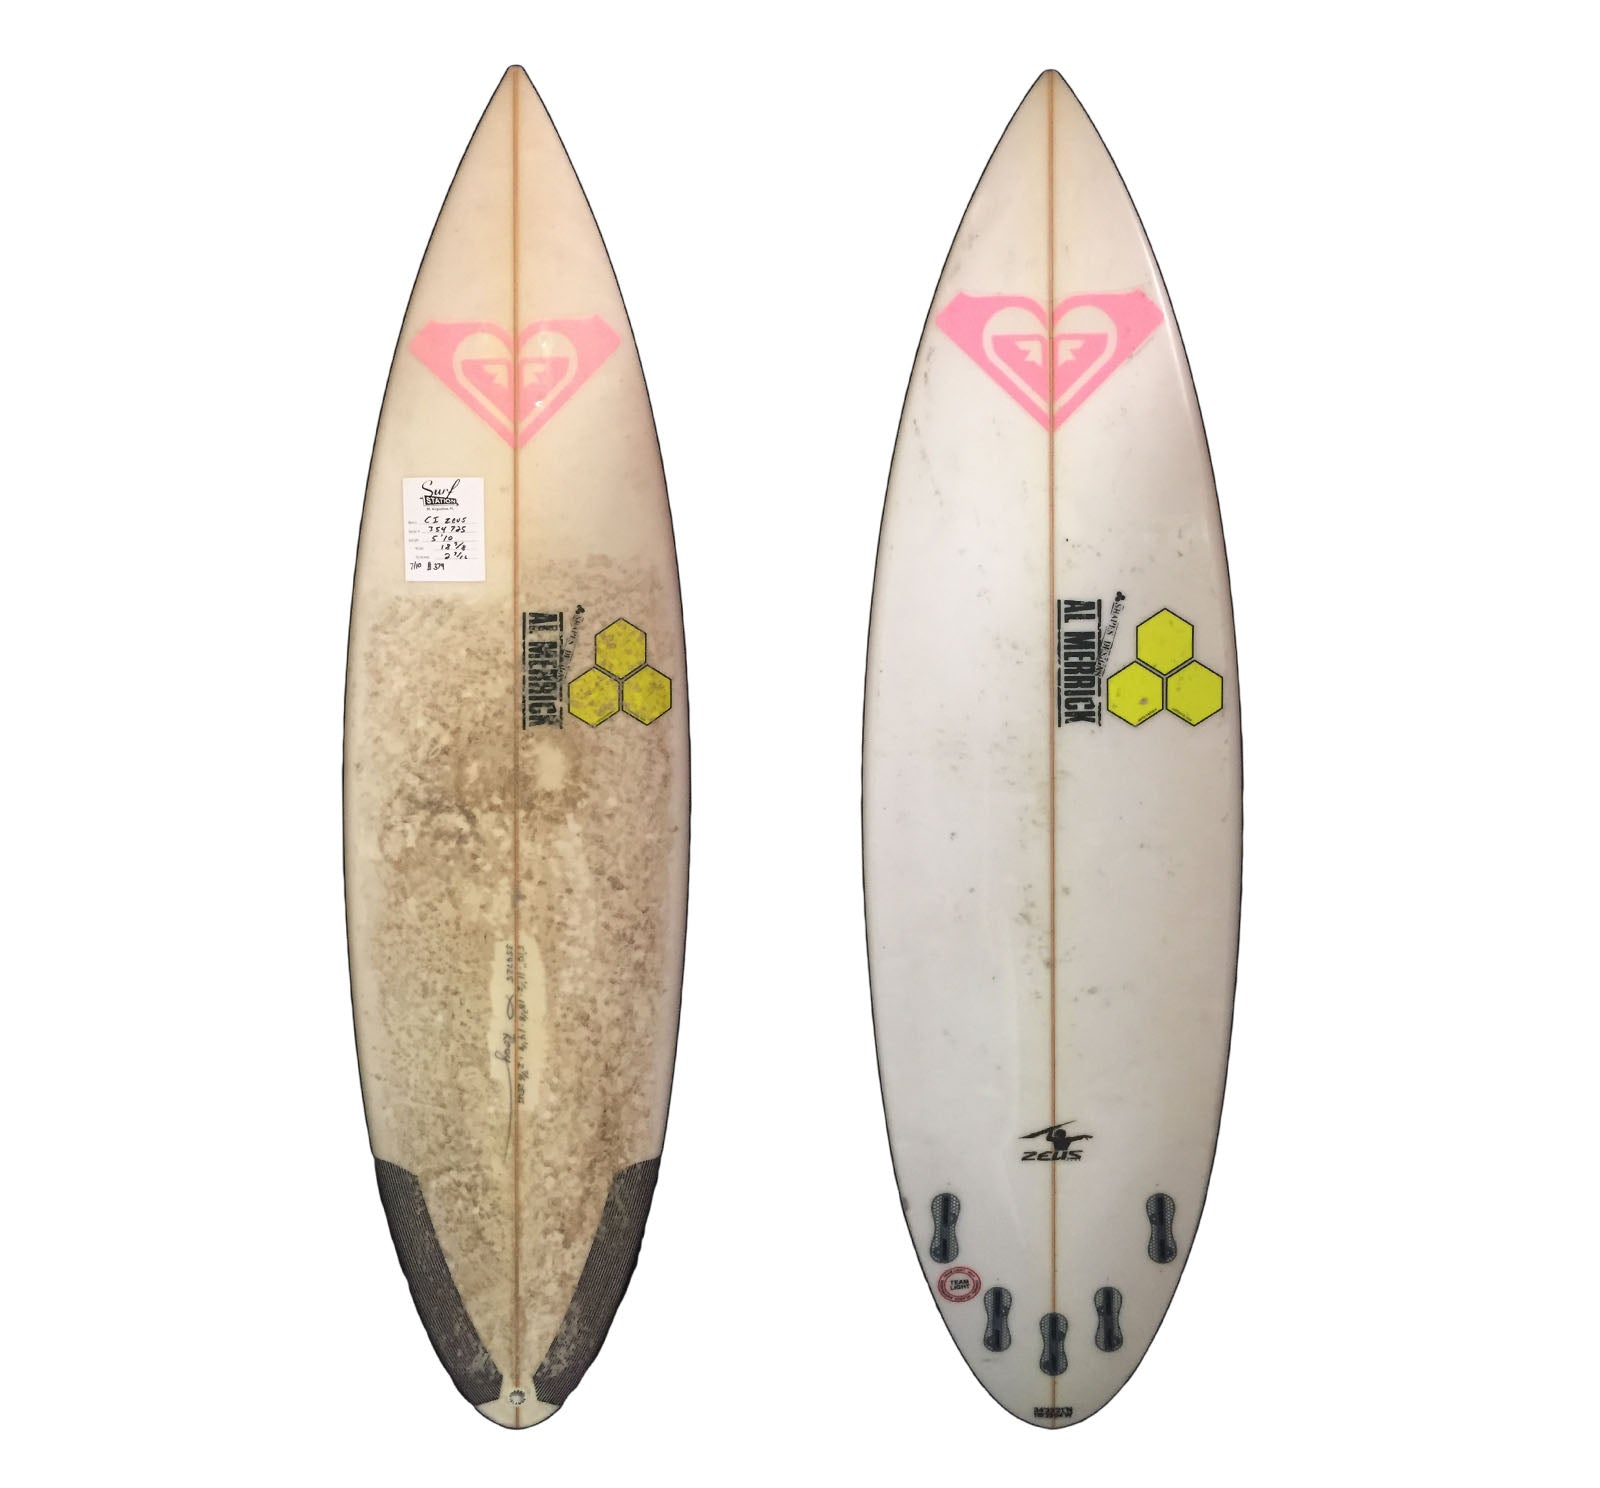 Channel Islands Zeus 5'10 Used Surfboard